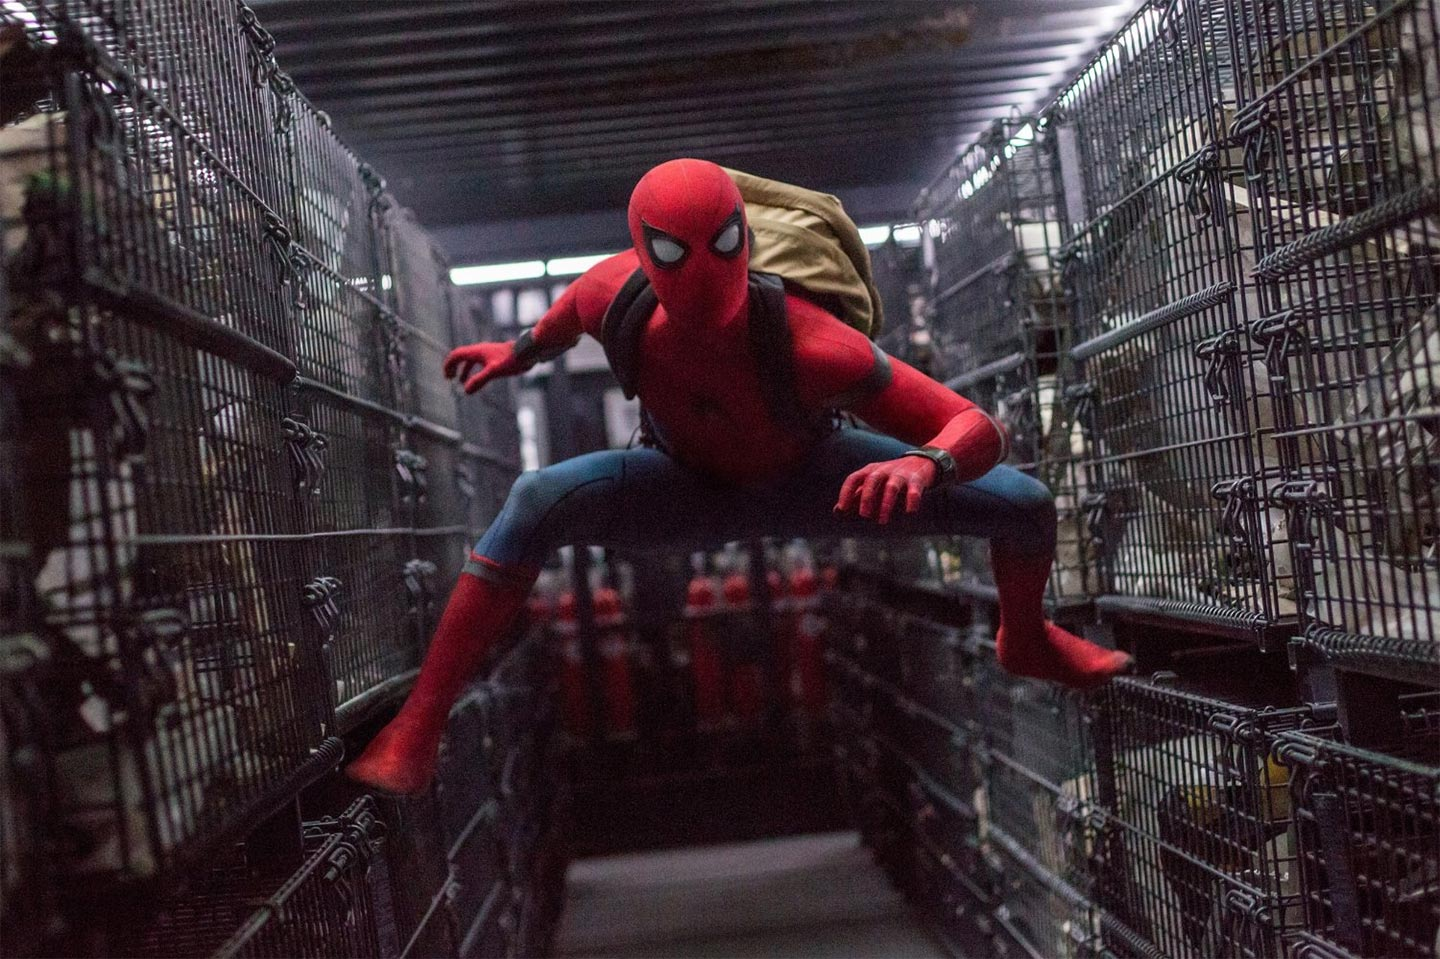 Spider-Man Homecoming Theatrical Trailer Screencap